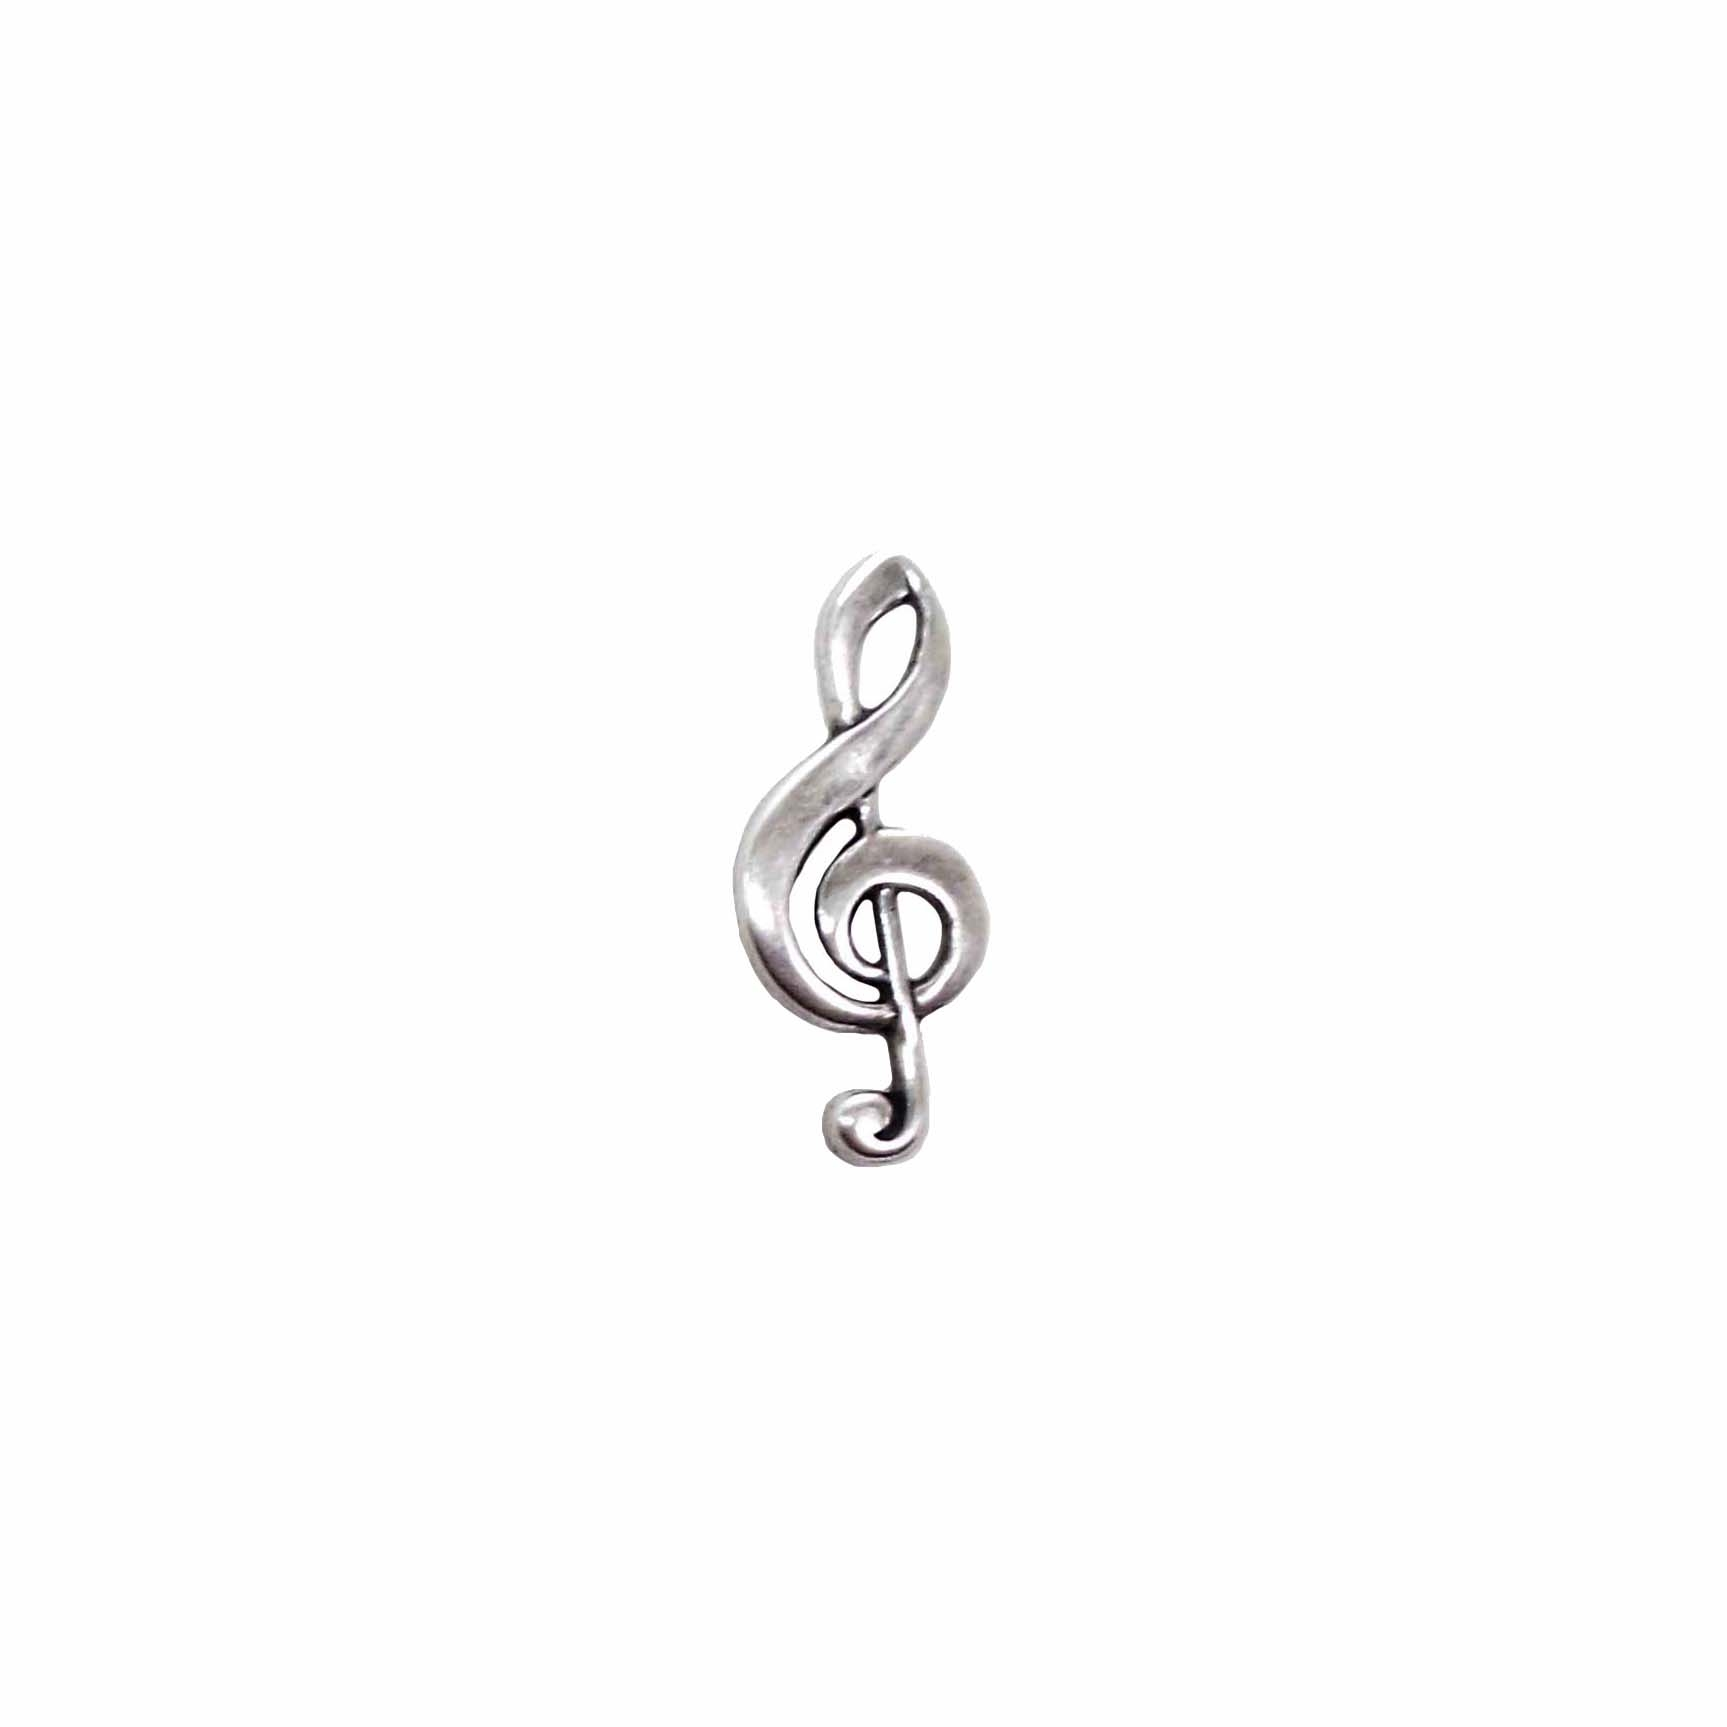 Brass Charms, Treble Clef, Music Charm, Silverware Silverplate, US Made, Nickel Free, 31 x 13mm